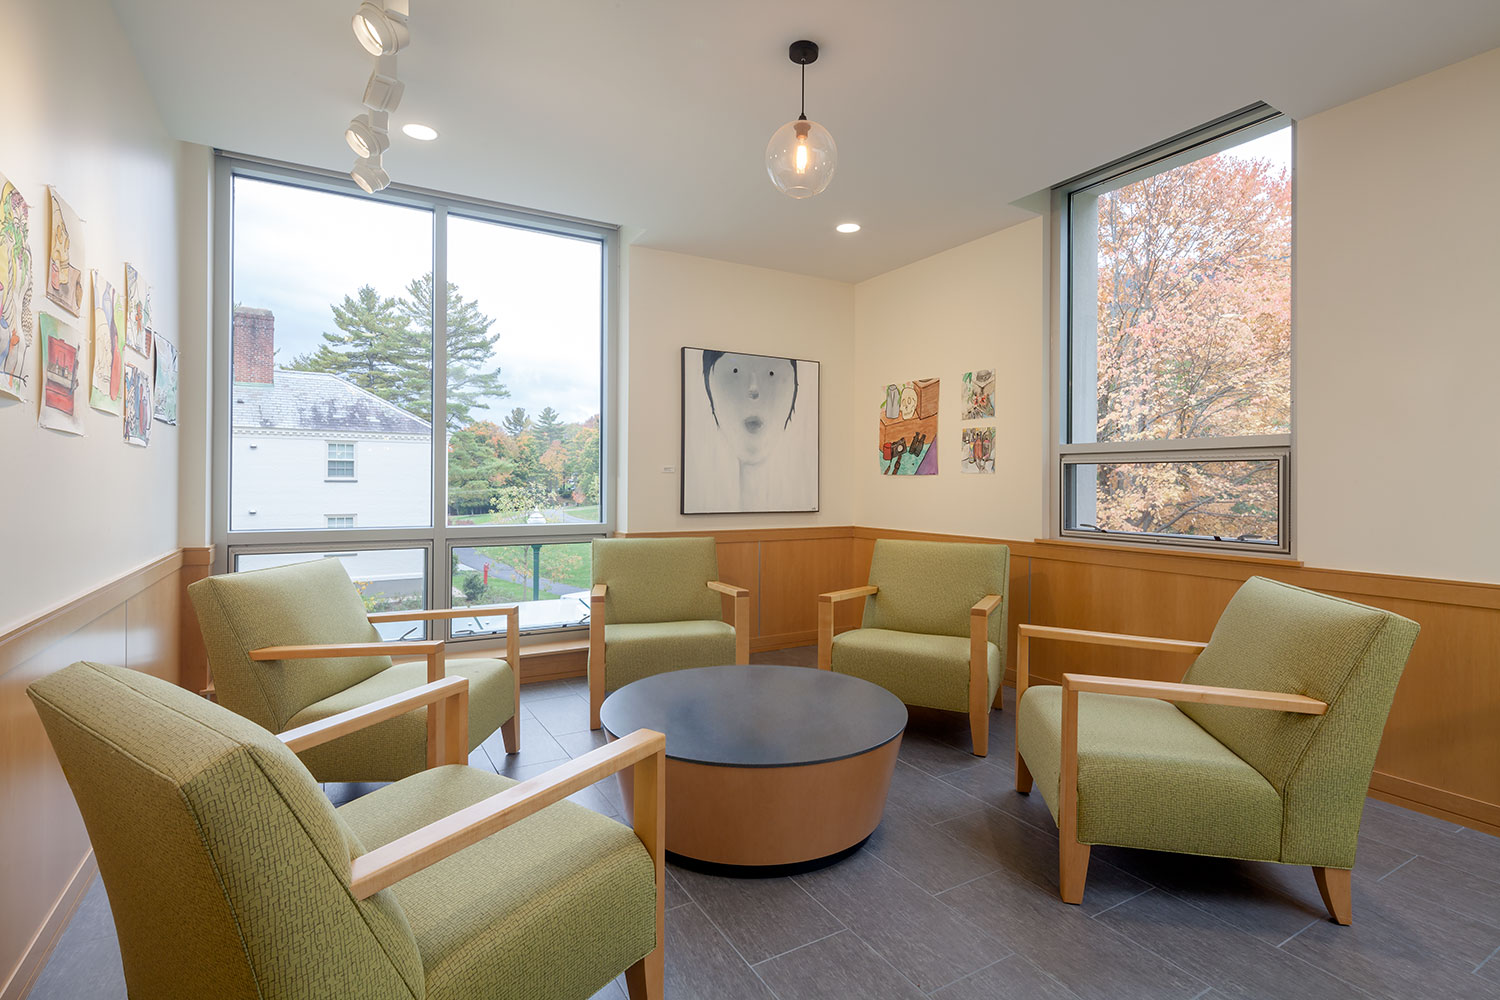 A reading nook of the building, this room has 4 green chairs with a table in the center and is framed by white walls and large windows.